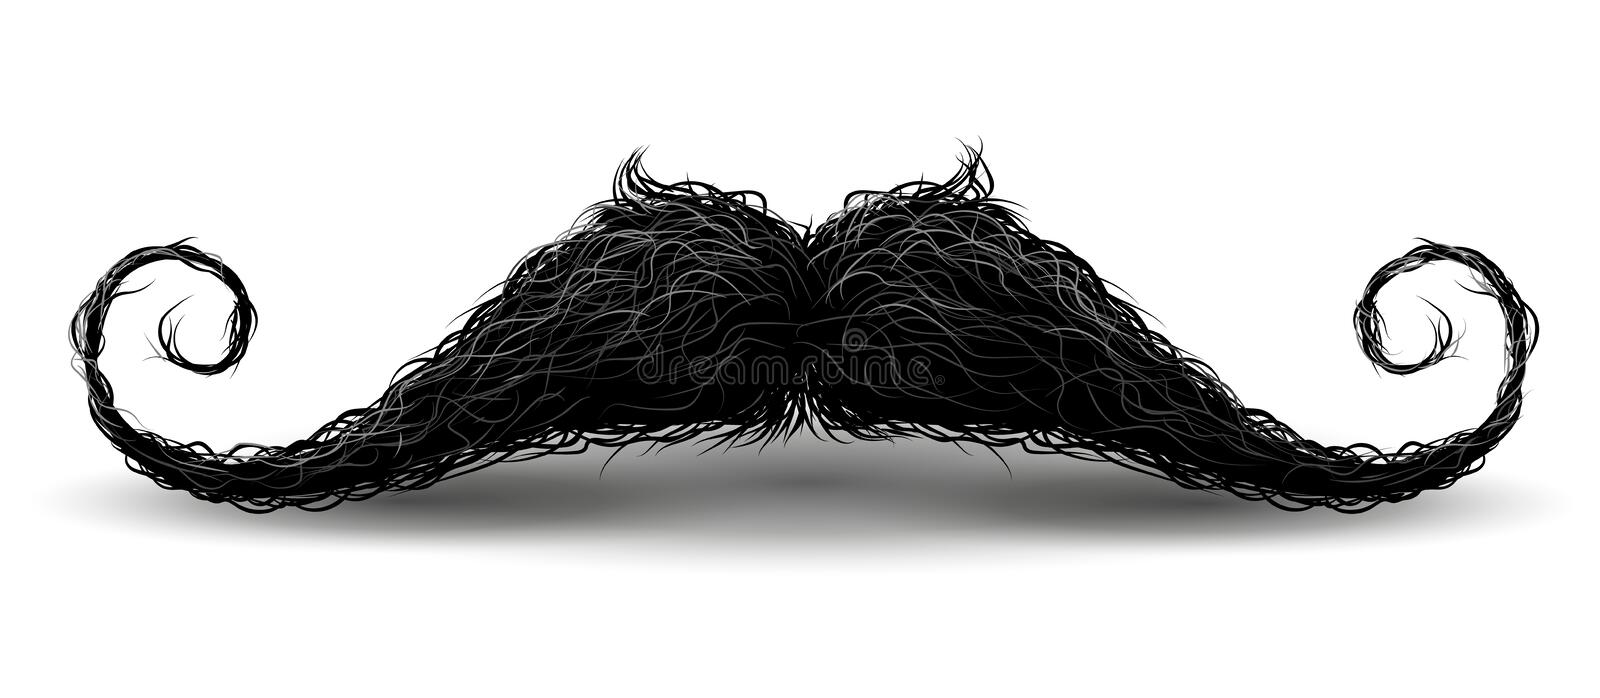 Perfect hipster mustache. Illustration with charm, Isolated on white background. Perfect hipster mustache. Illustration with charm. Isolated on white background vector illustration